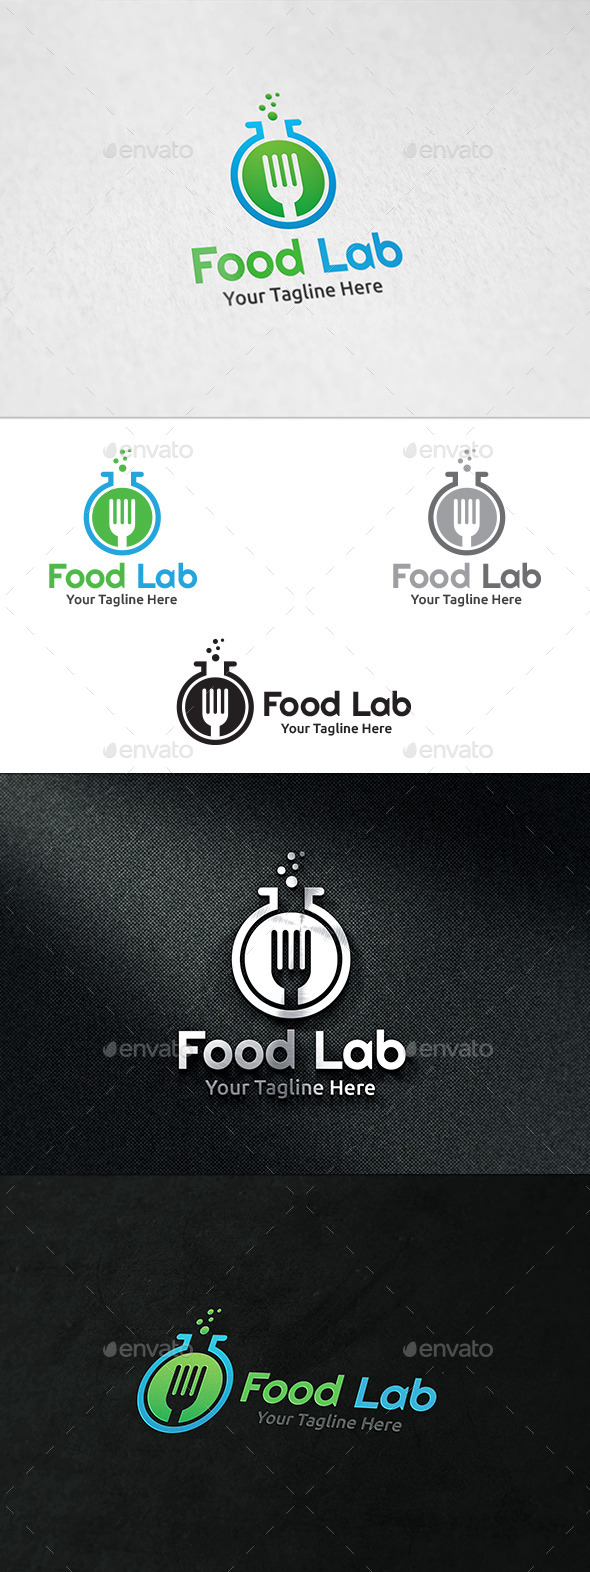 Food Lab - Logo Template